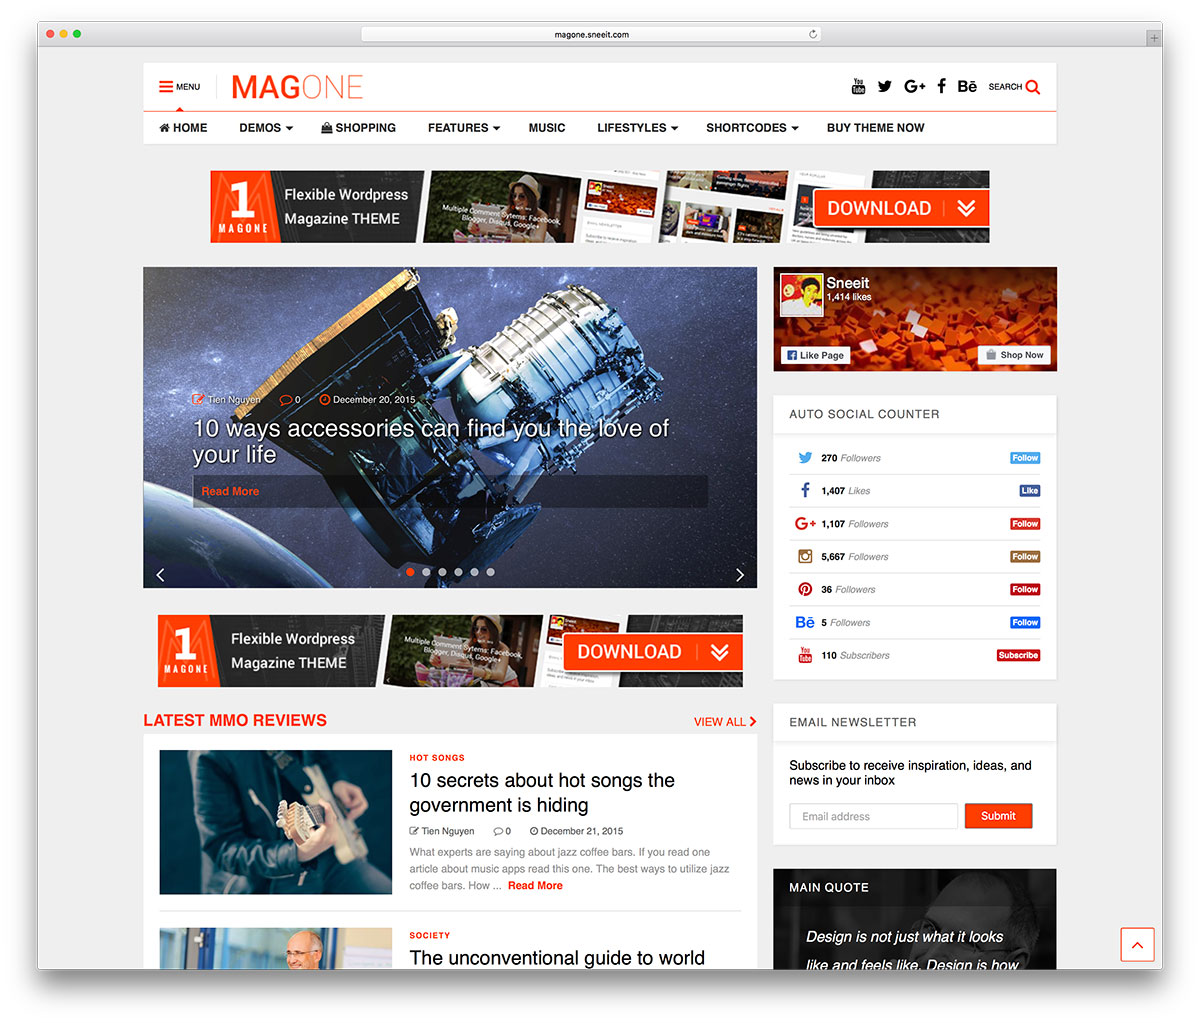 "magone-affiliate-wordpress-theme ""width ="" 1200 ""height ="" 1023 ""data-lazy-srcset ="" https://cdn.colorlib.com/wp/wp-content/uploads/sites/2/magone-affiliate -wordpress-theme.jpg 1200w, https://cdn.colorlib.com/wp/wp-content/uploads/sites/2/magone-affiliate-wordpress-theme-300x256.jpg 300w, https: //cdn.colorlib .com / wp / wp-content / uploads / sites / 2 / magone-affiliate-wordpress-theme-768x655.jpg 768w, https://cdn.colorlib.com/wp/wp-content/uploads/sites/2/ magone-affiliate-wordpress-theme-1024x873.jpg 1024w ""data-lazy-tailles ="" (largeur max: 1200px) 100vw, 1200px ""data-lazy-src ="" https://cdn.colorlib.com/wp/ wp-content / uploads / sites / 2 / magone-affiliate-wordpress-theme.jpg? is-waiting-load = 1 ""srcset ="" données: image / gif; base64, R0lGODlhAQABAAAAAAAAAP /// yH5BAEAAAAAAAAAAAAAAAAAAAAAP7/></p> <p><noscript><img class="